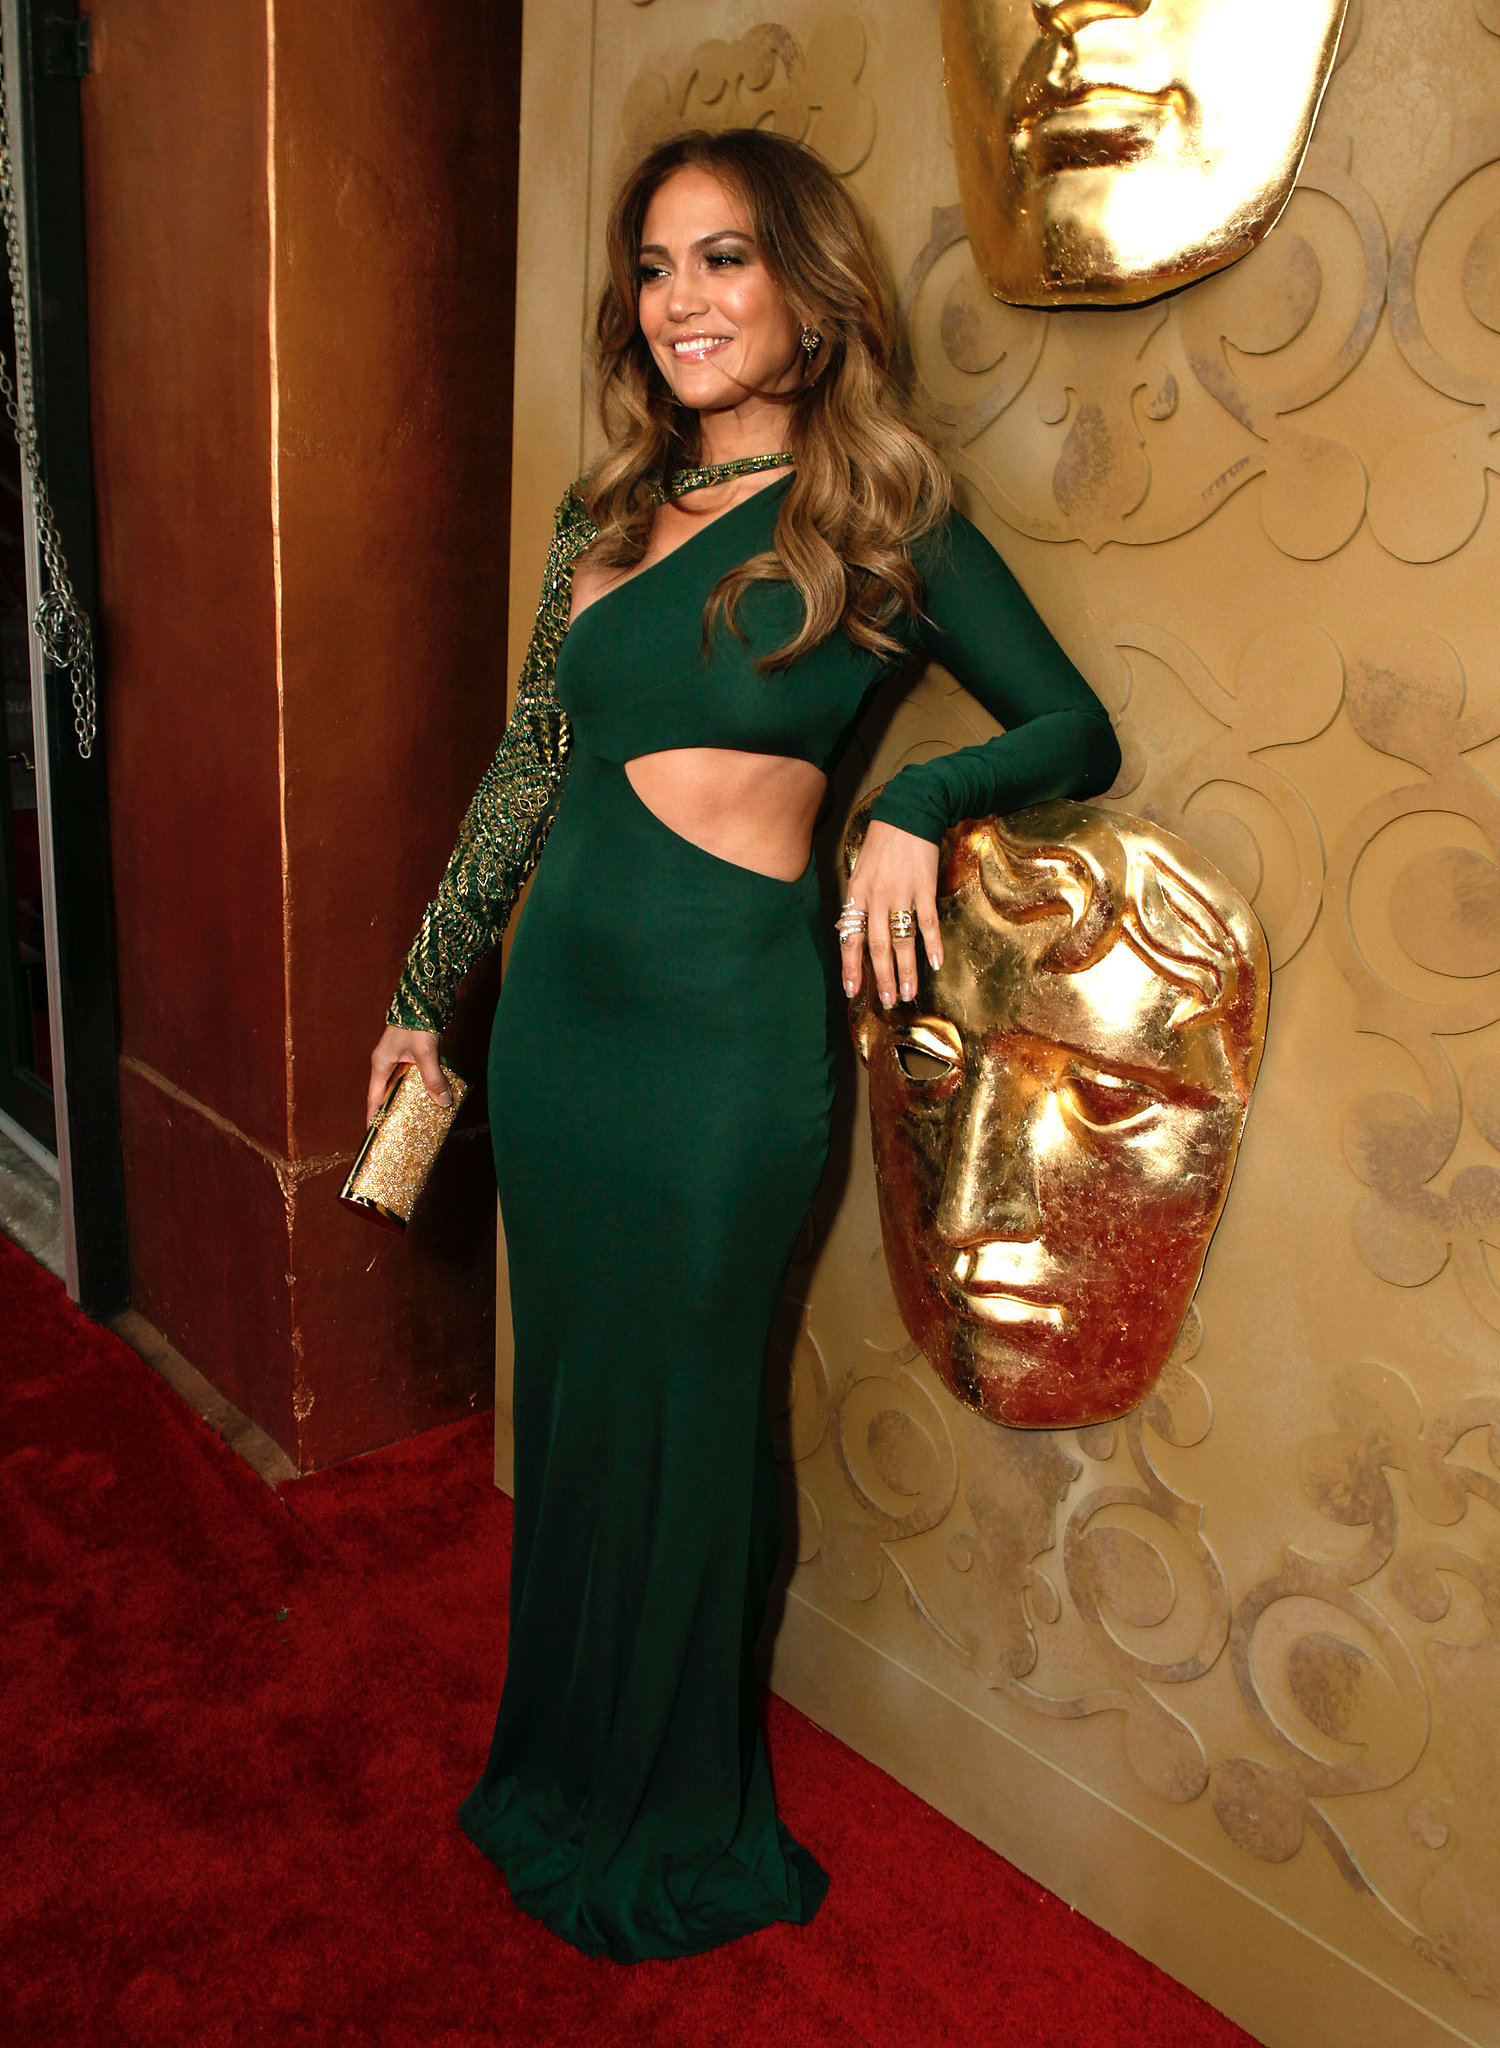 A revealing Pucci gown for the 2011 BAFTA Brits to Watch Event.